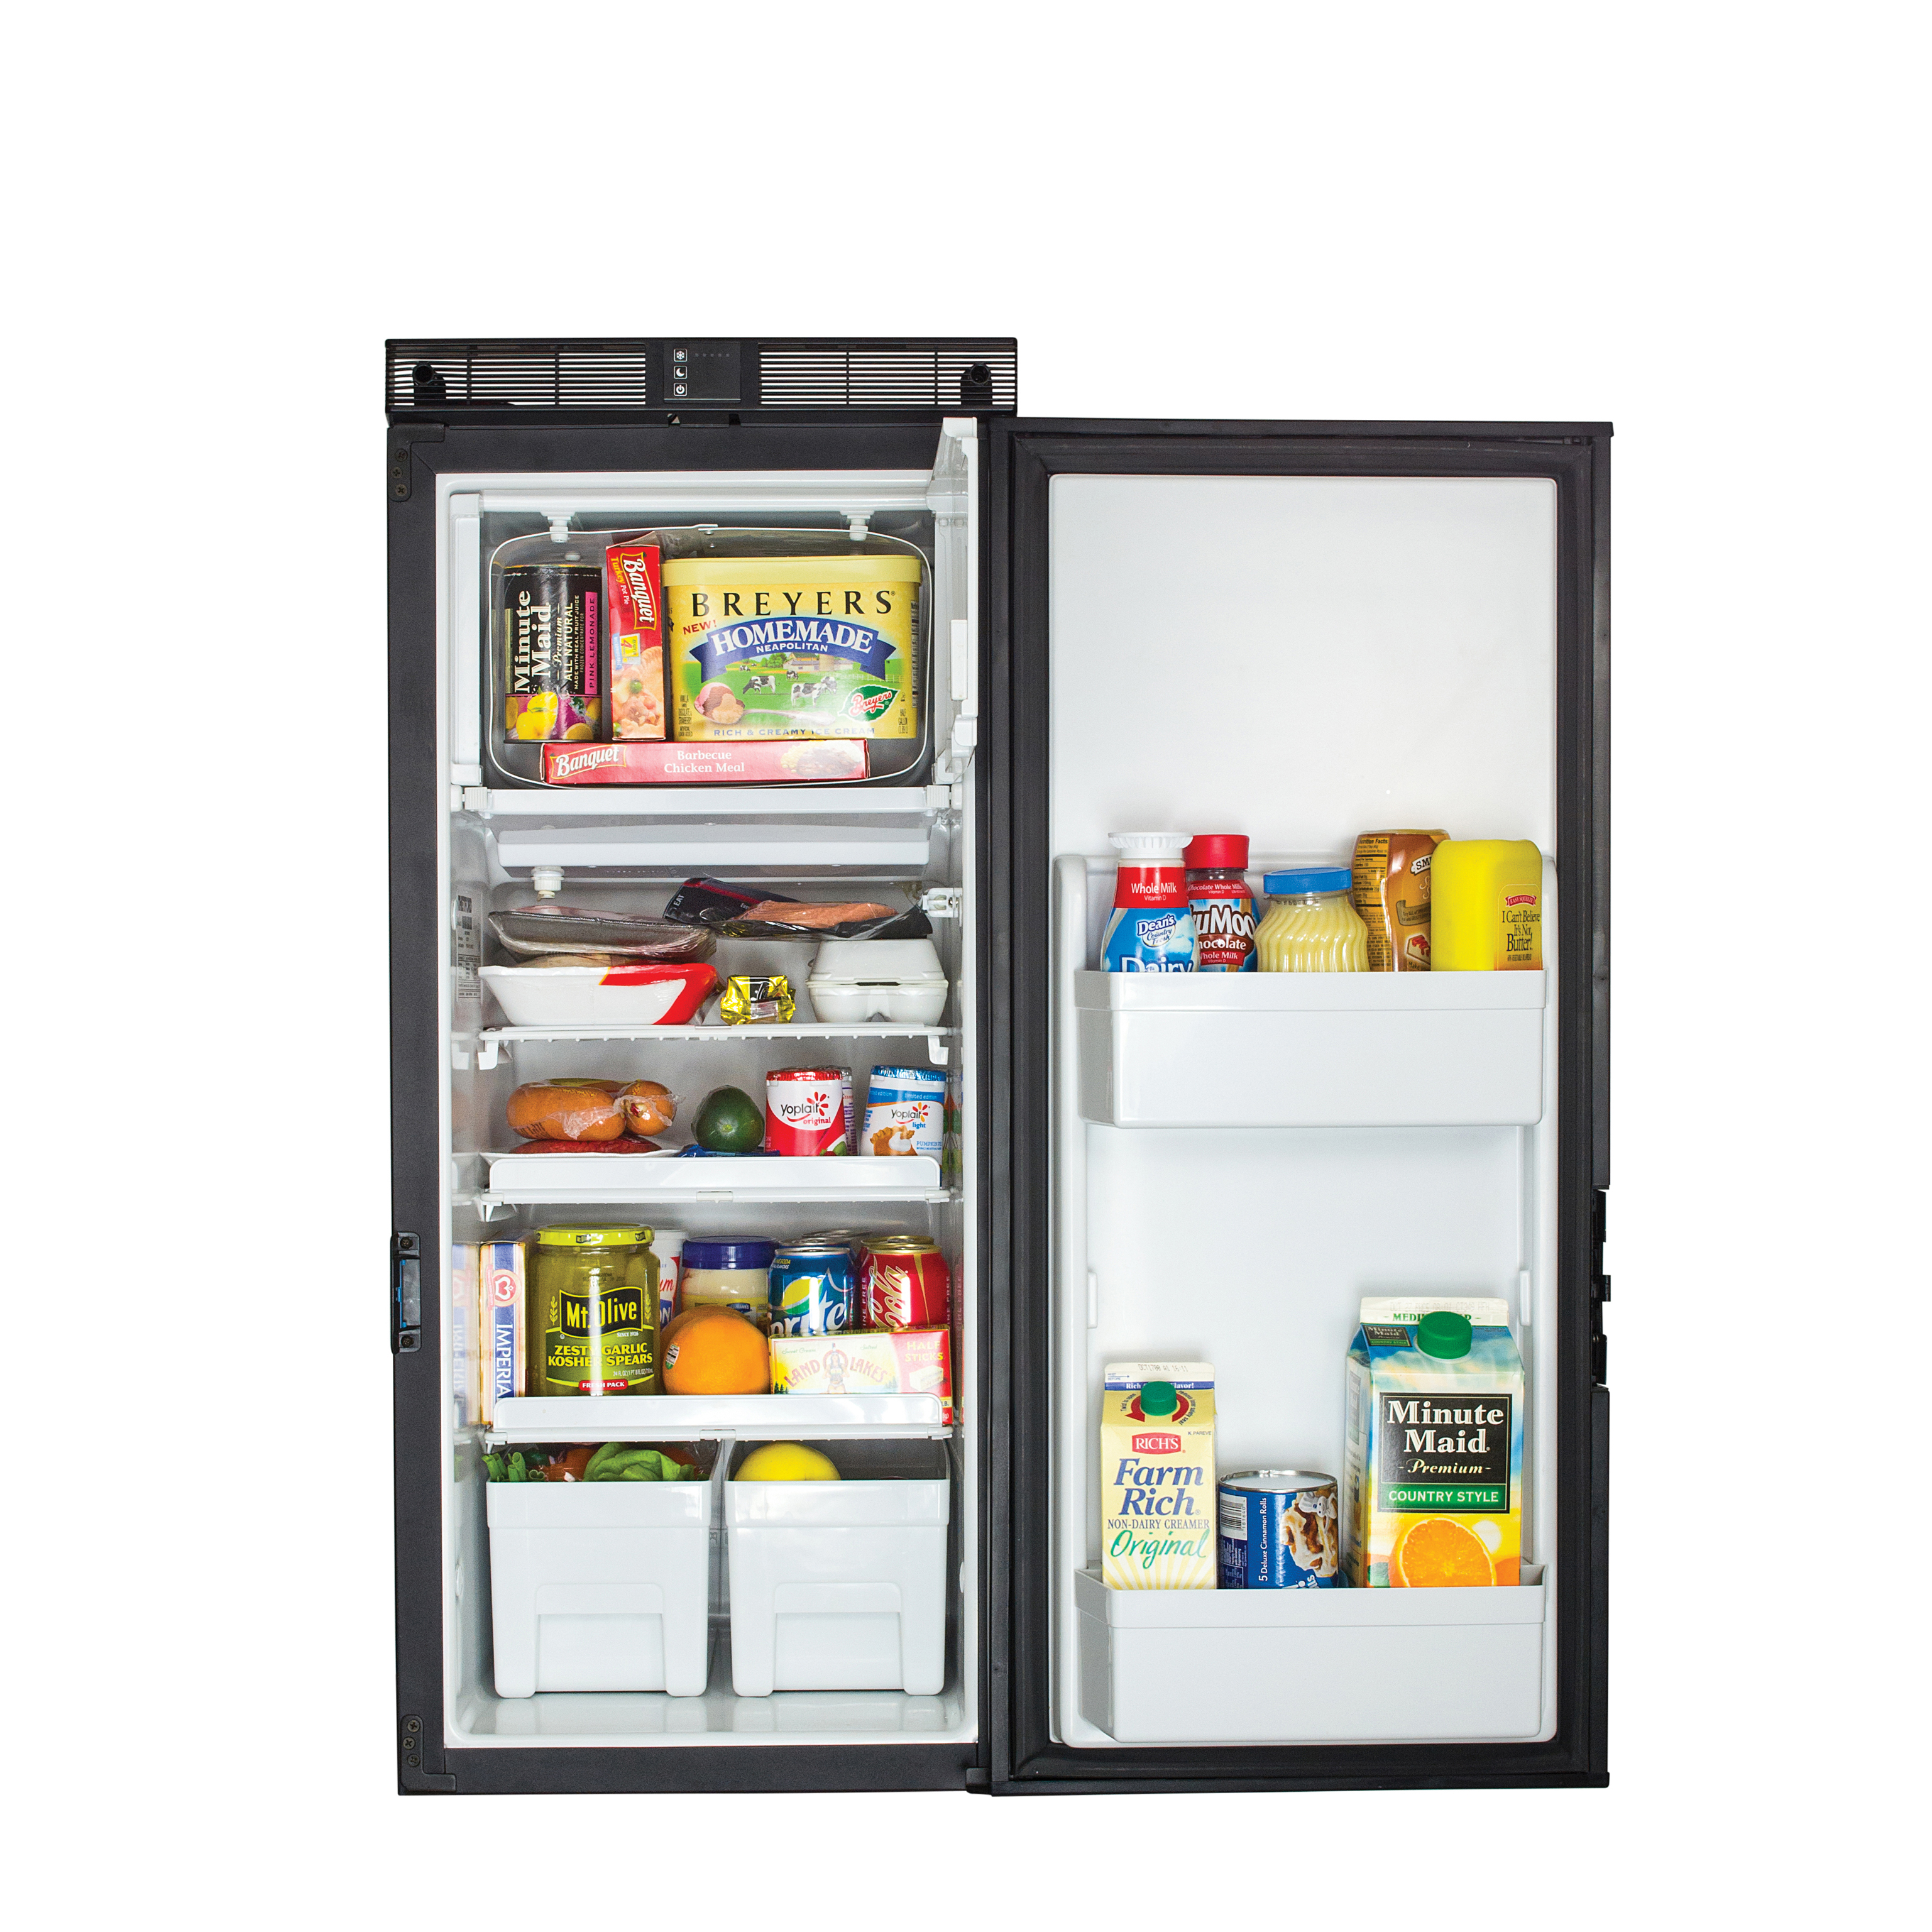 Norcold N1090 – 3 2 cubic feet refrigerator for vans